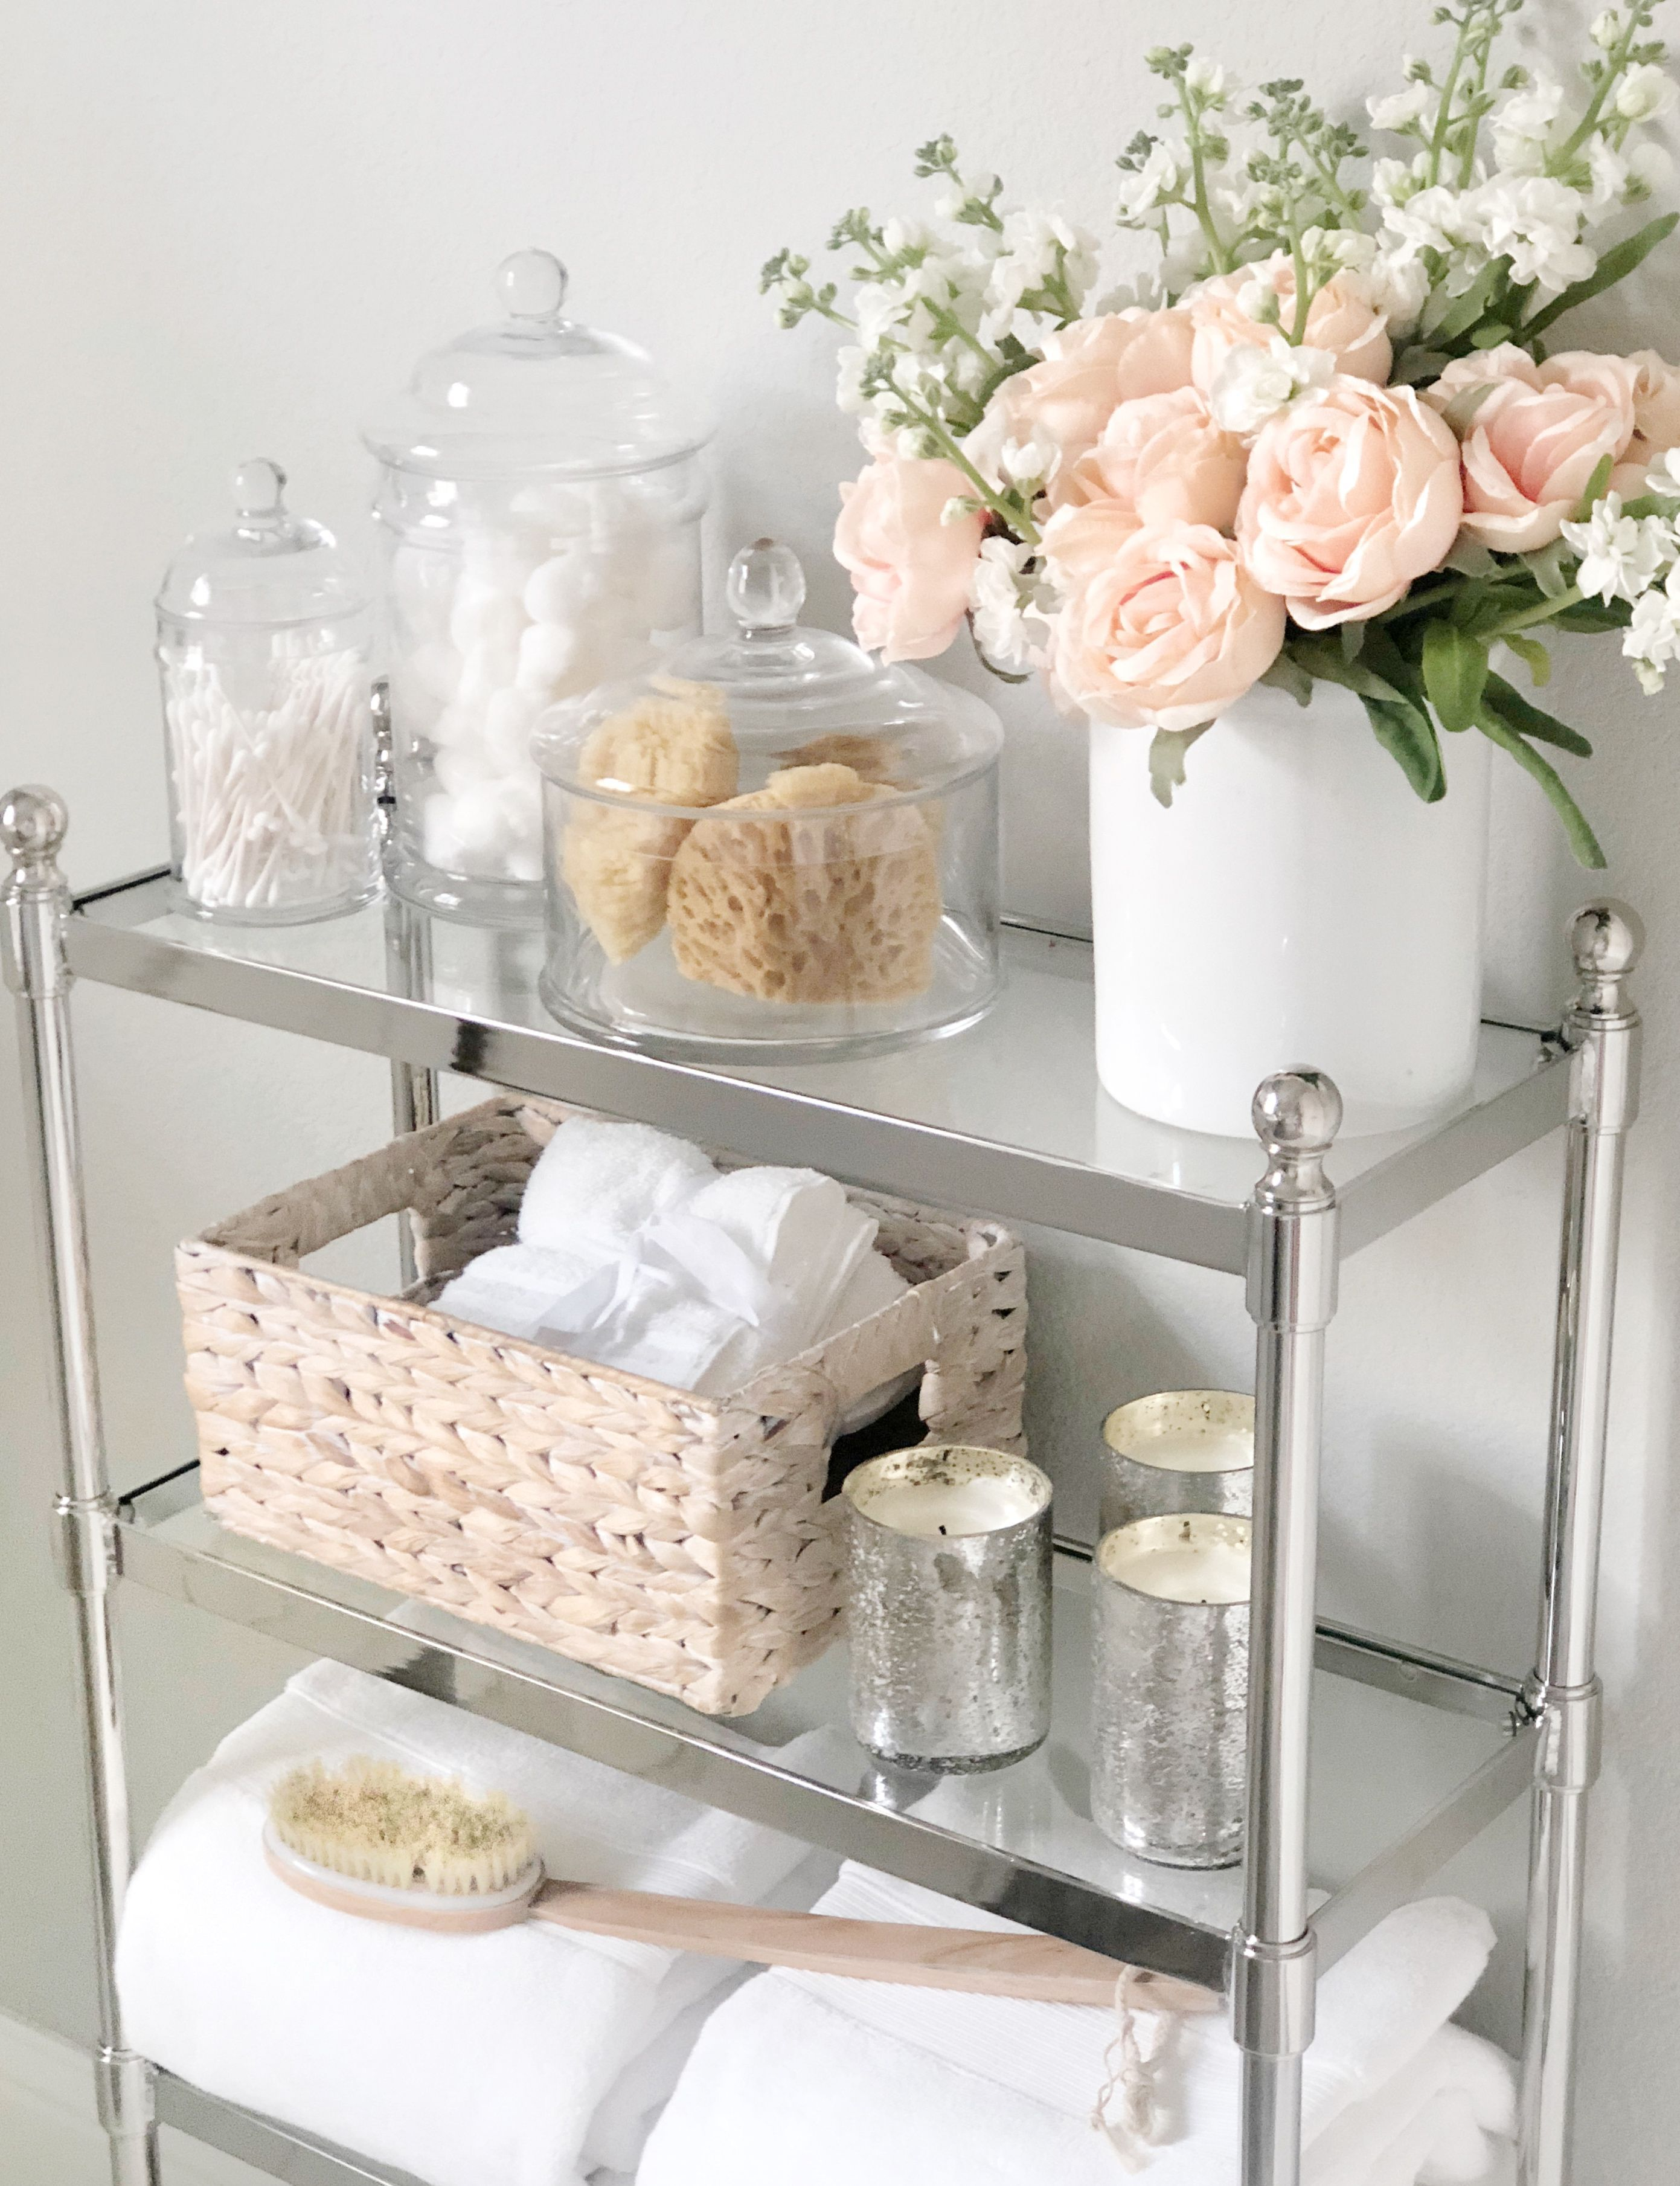 Photo of Bathroom Update: Adding Stylish Storage to Control the Clutter – My Texas House